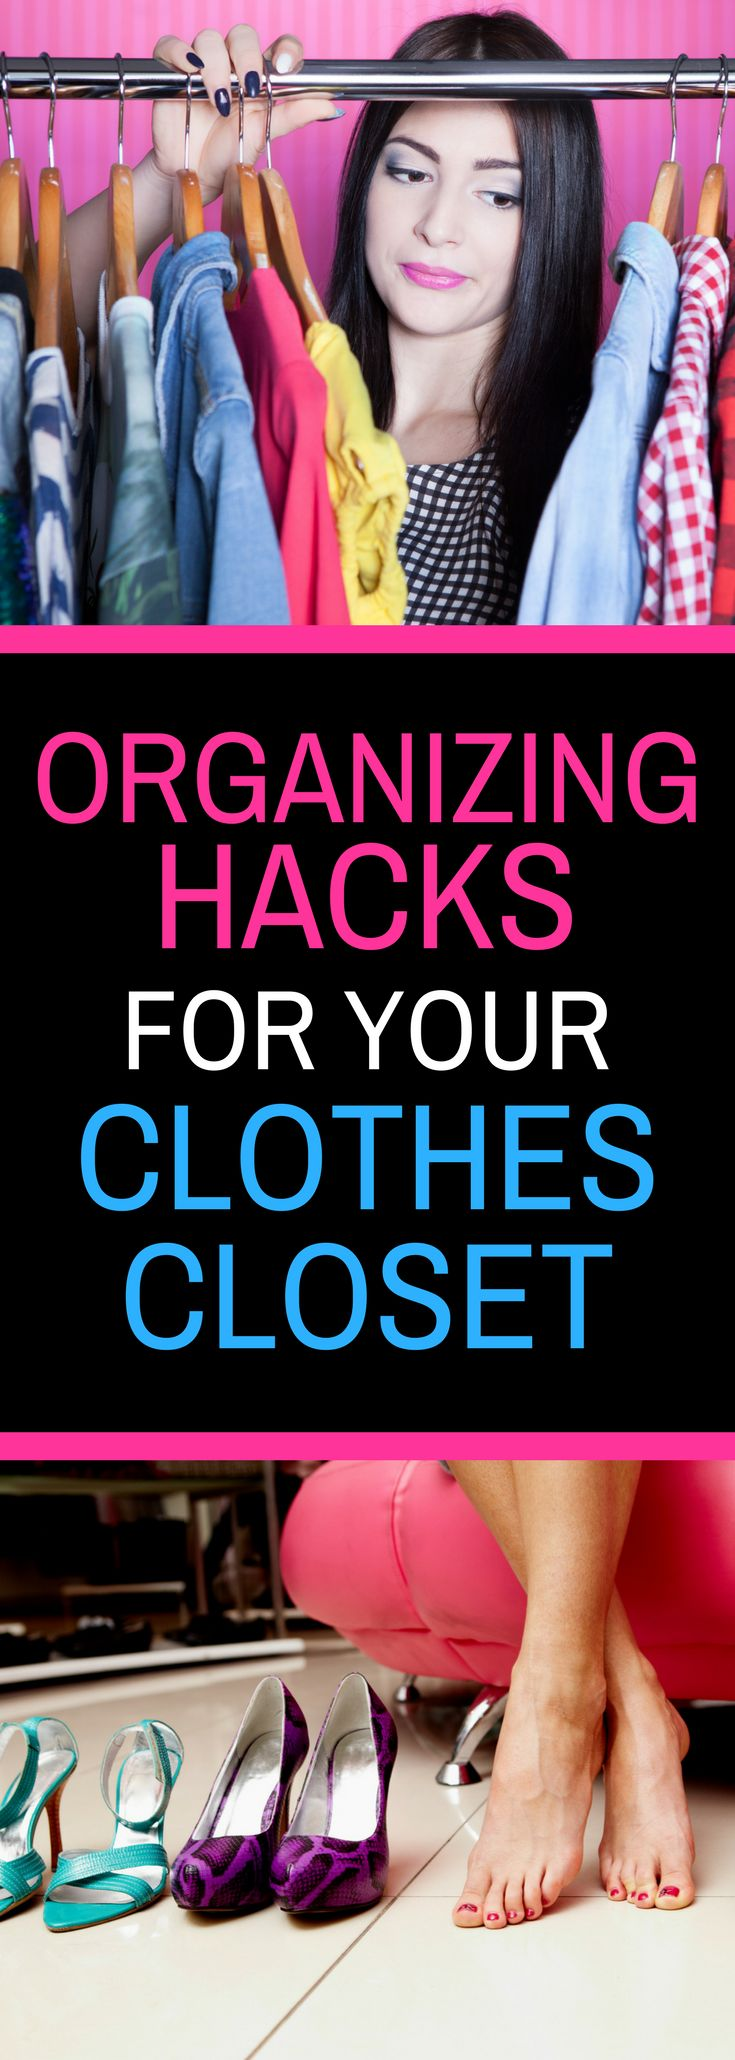 Organizing Hacks for Your Clothes Closet - Keep your clothes closet neat and tidy with these neat tips.  Spring clean your closet.